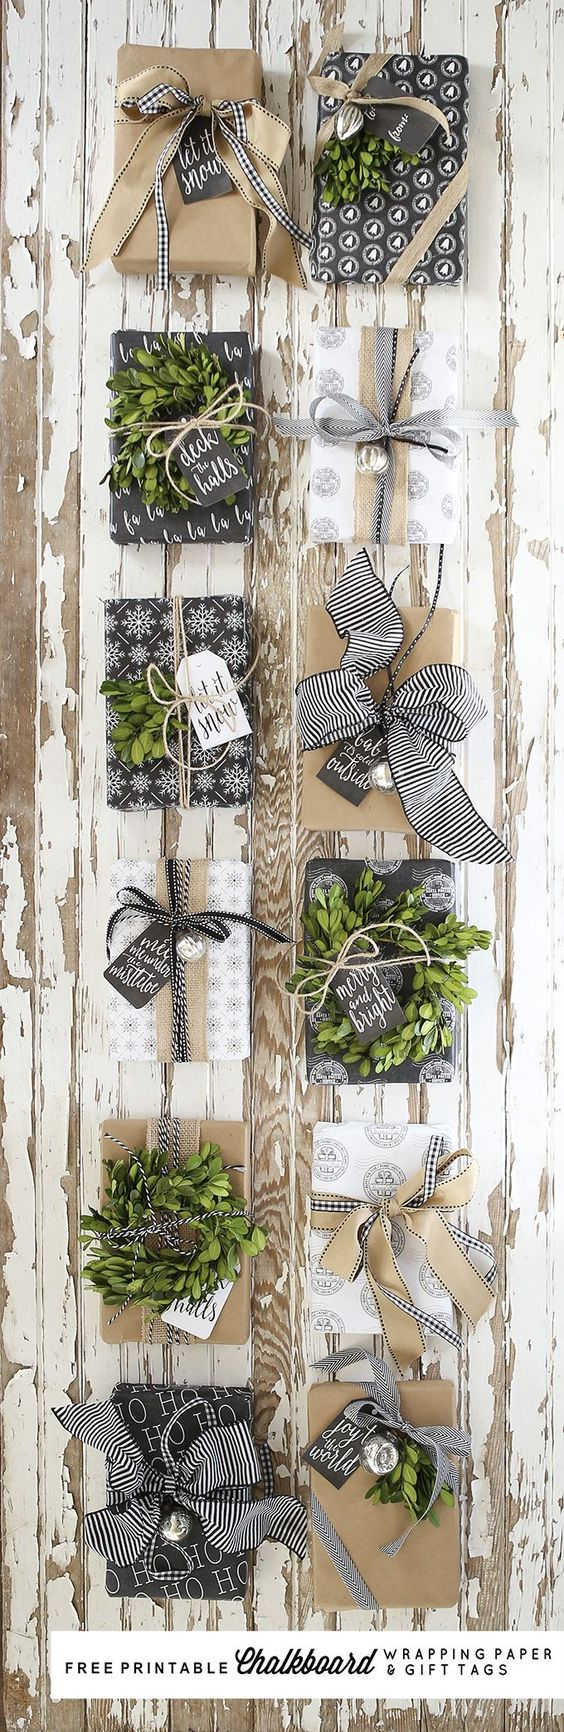 Free Printable Chalkboard Wrapping Paper and Gift Tags: